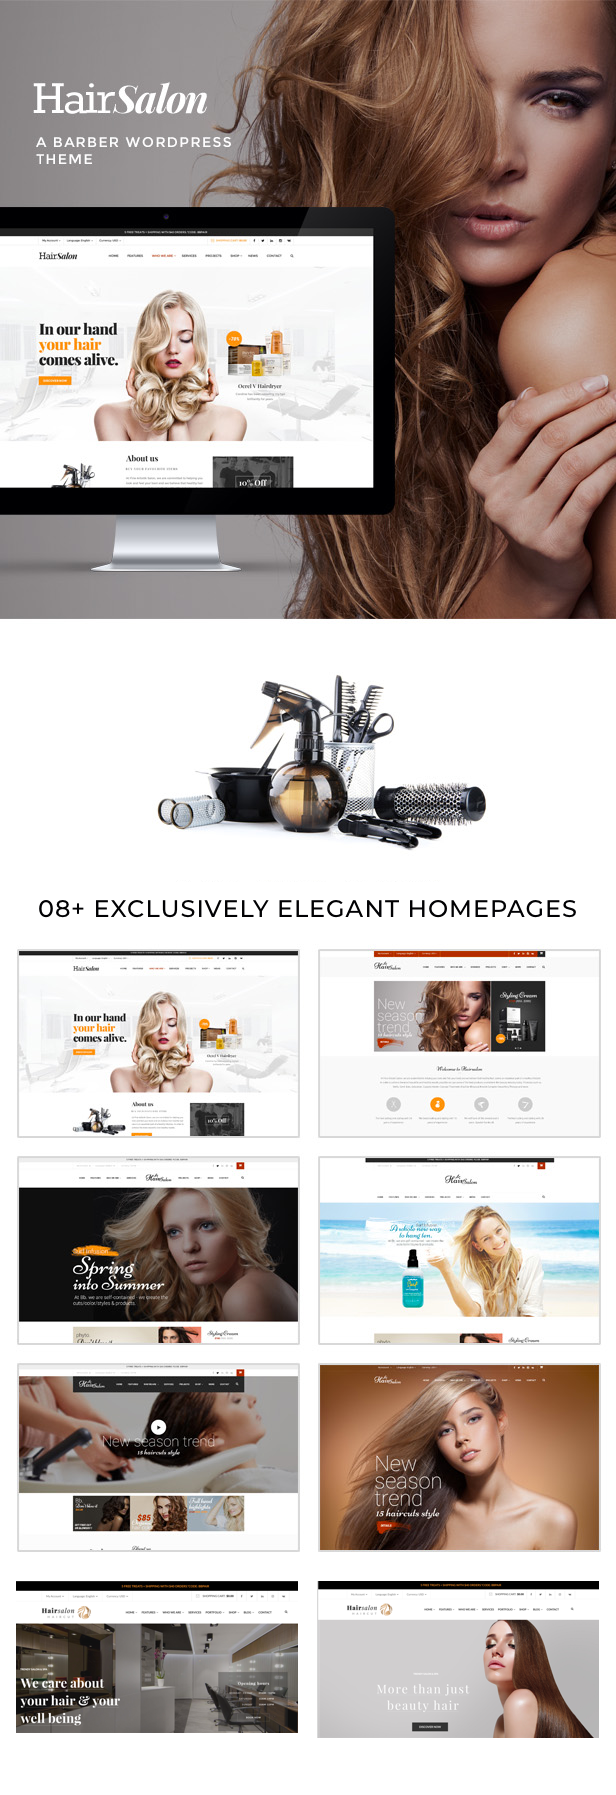 Hair Salon - Barber & Beauty Shop WordPress Theme - 4